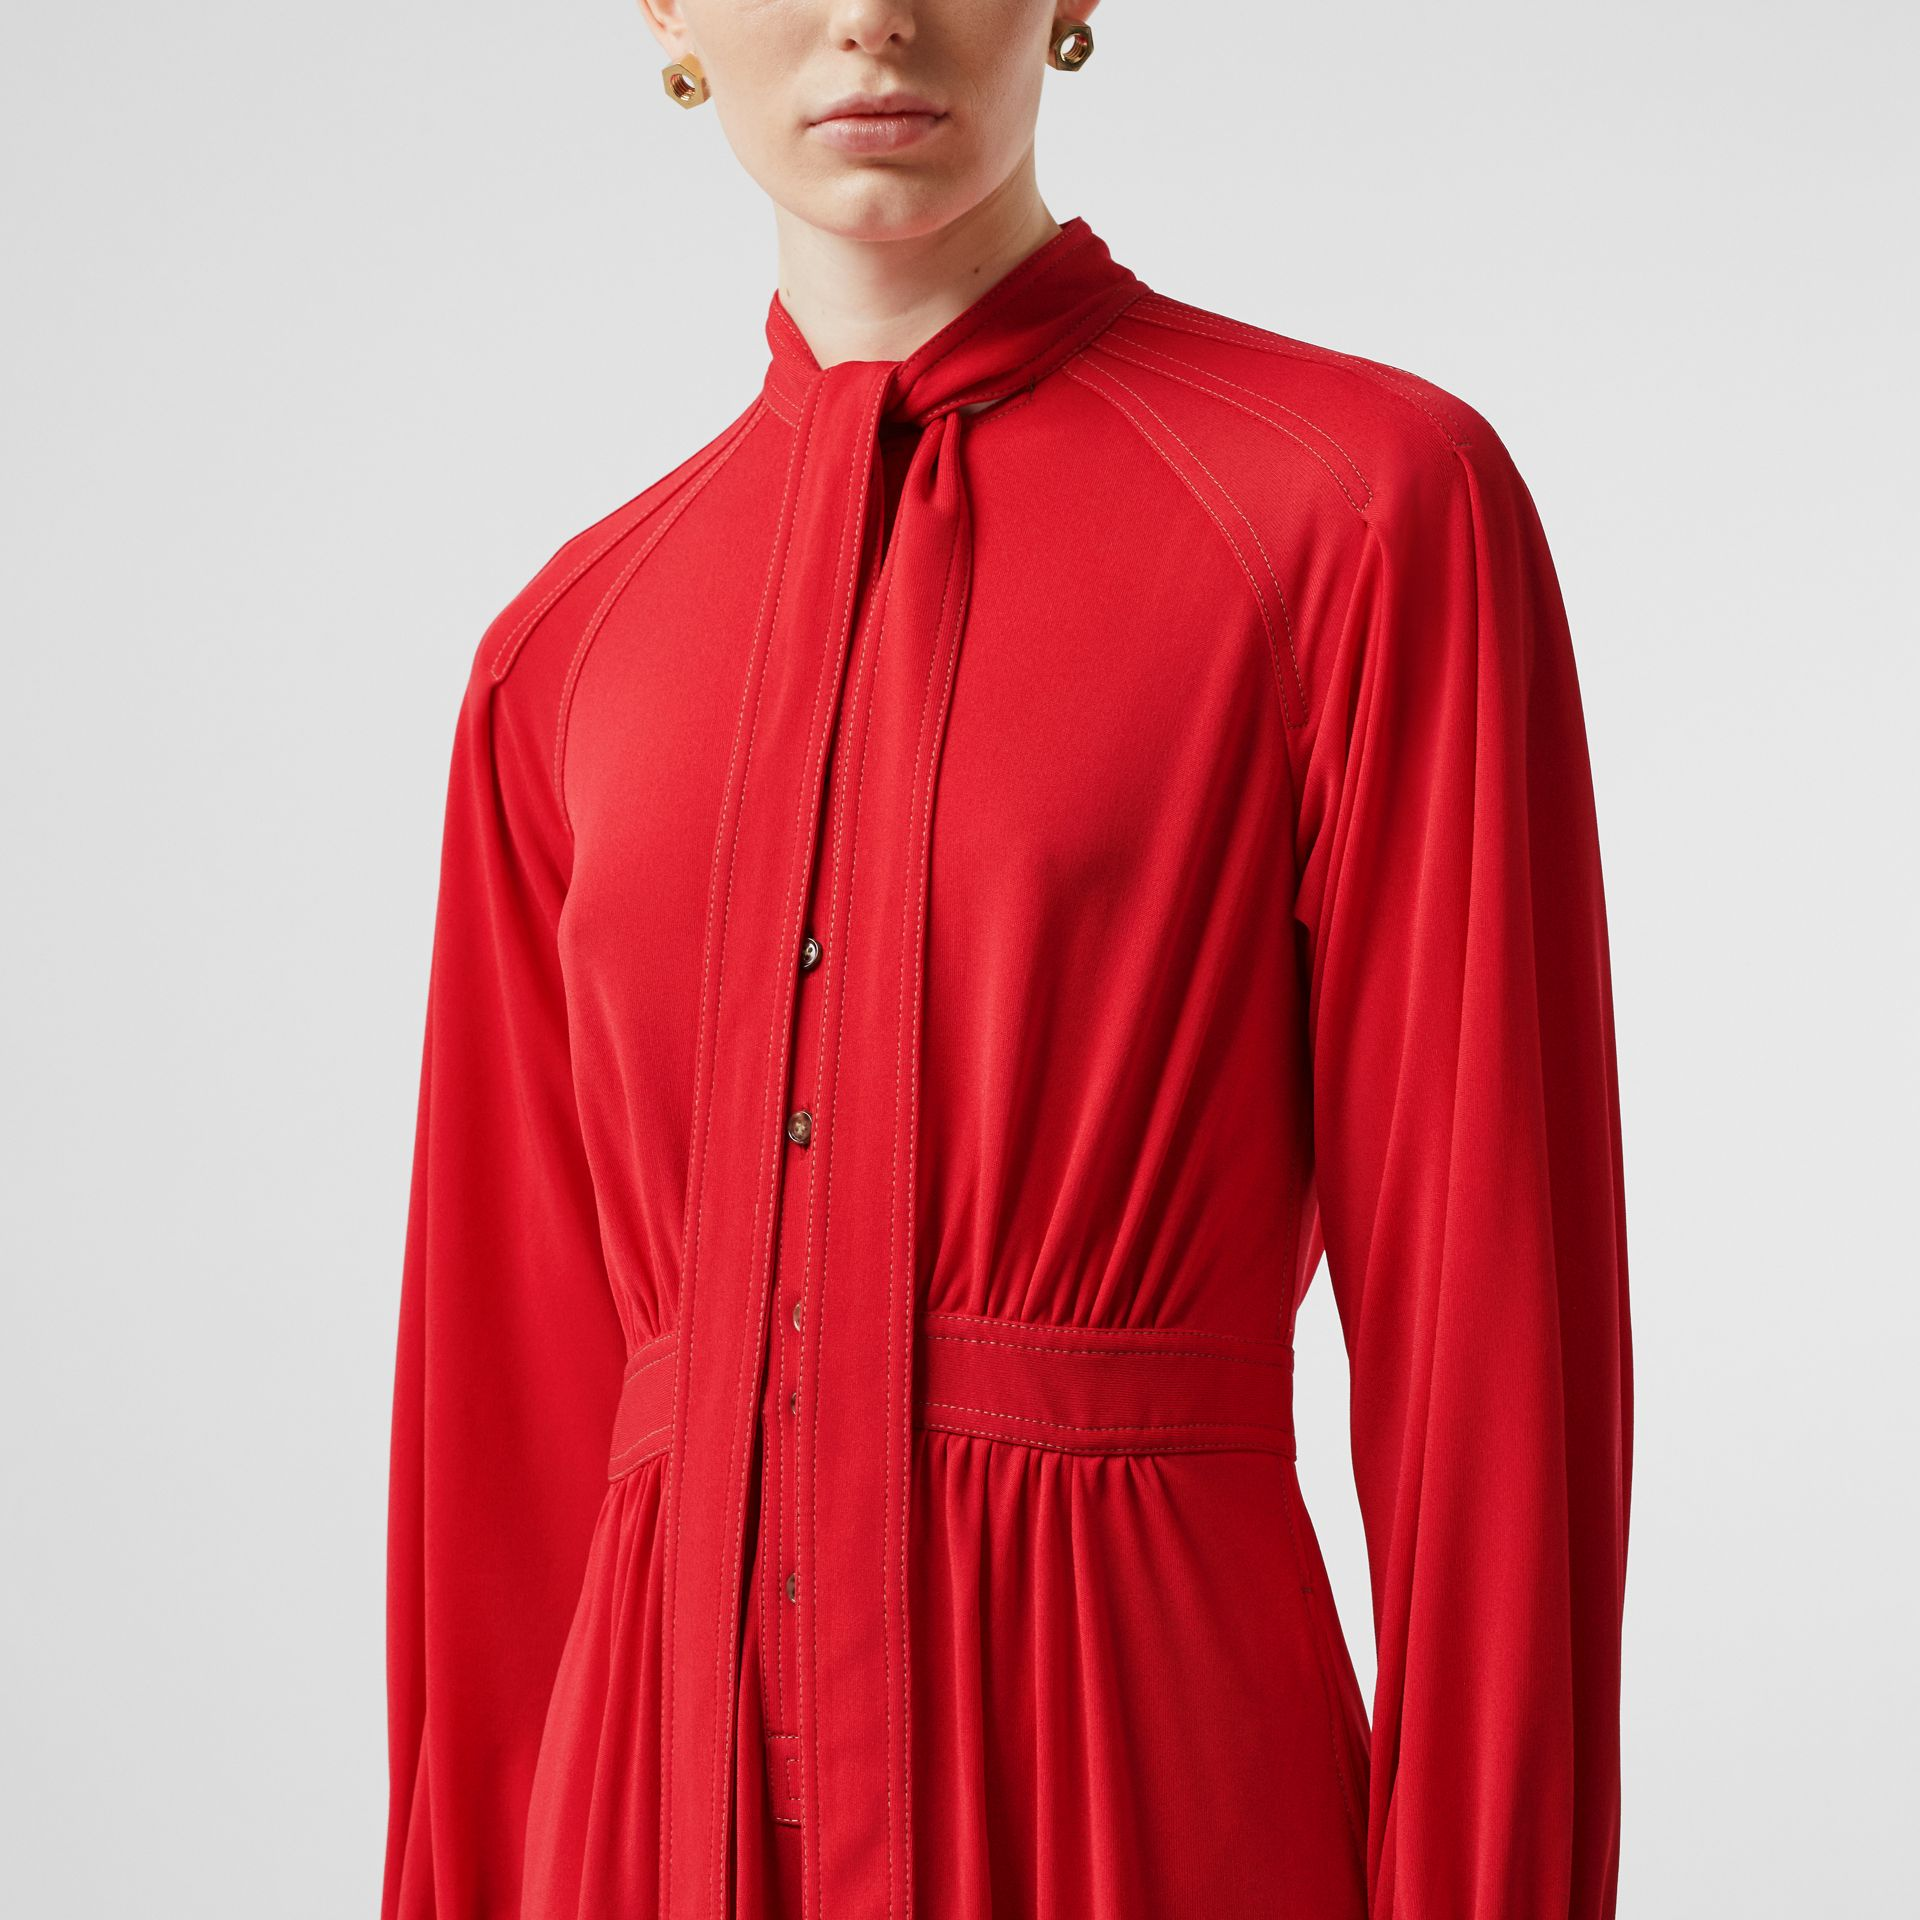 Topstitch Detail Jersey Tie-neck Dress in Bright Red - Women | Burberry United Kingdom - gallery image 4